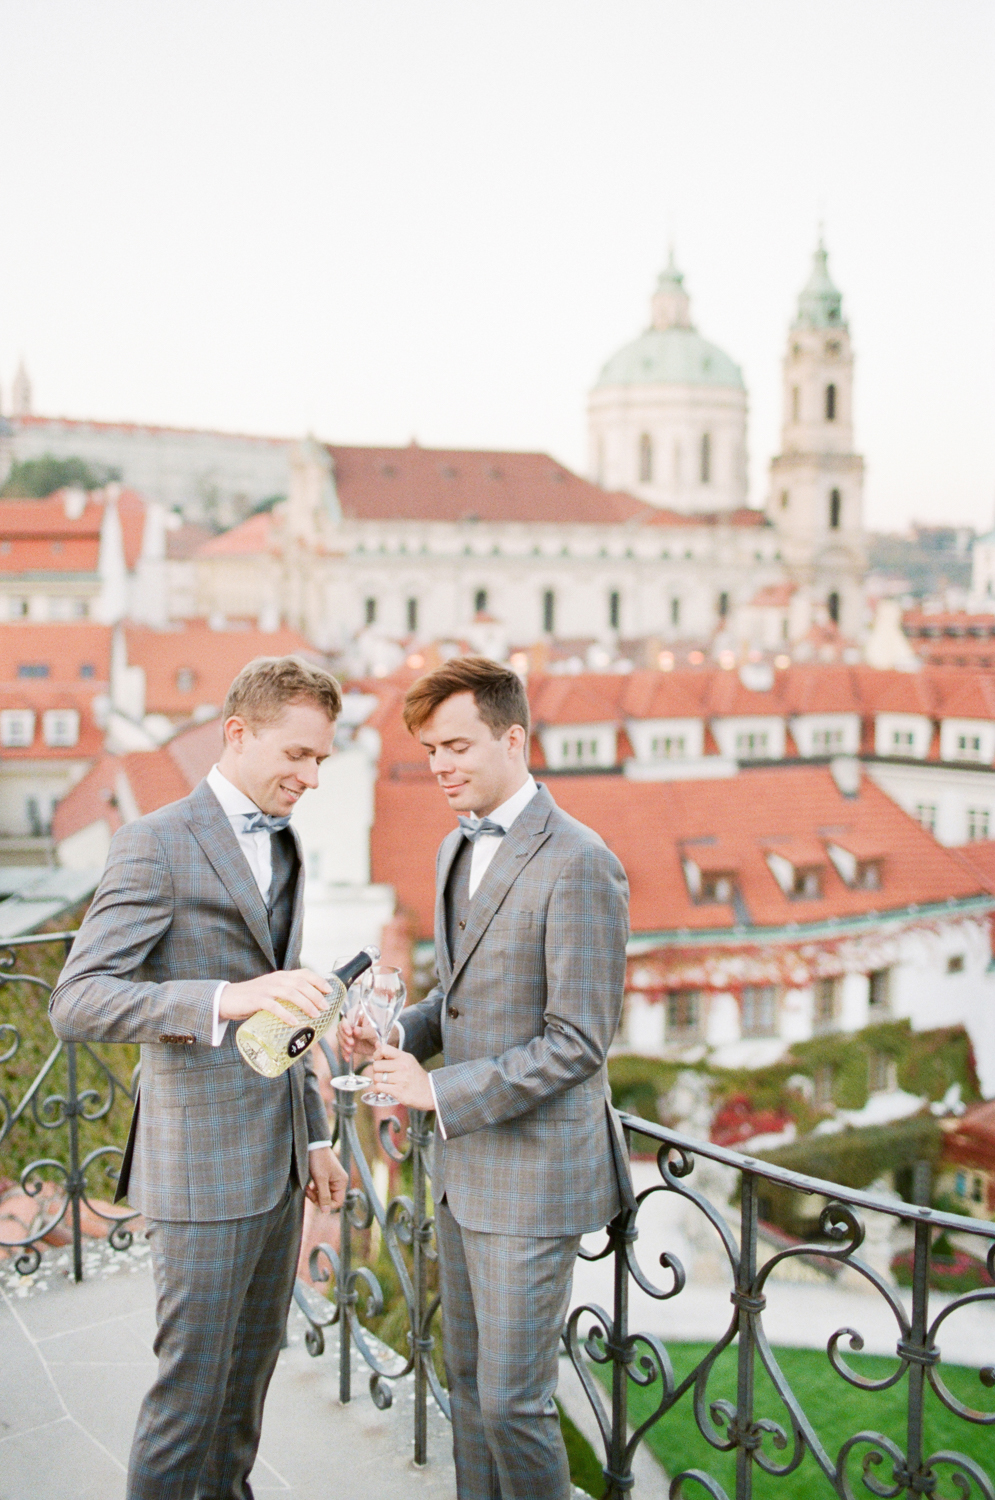 prague_wedding_vrtba_gardens_elopement_film_wedding_photographer_nikol_bodnarova_98.JPG